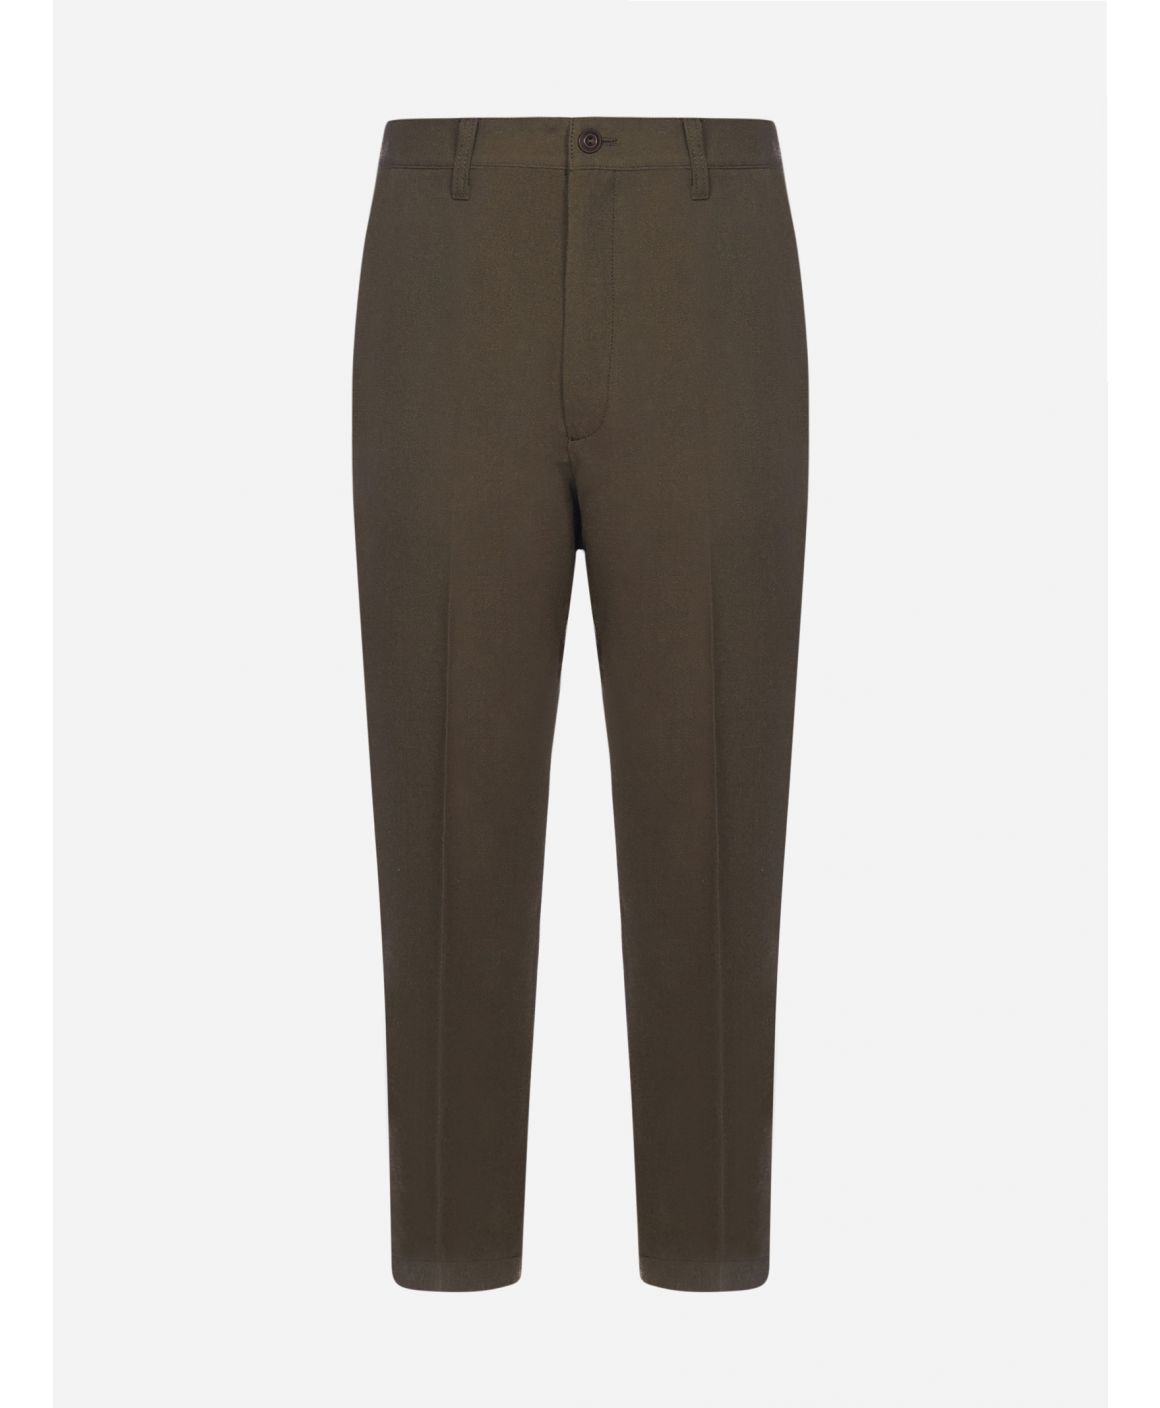 Wool tweed trousers